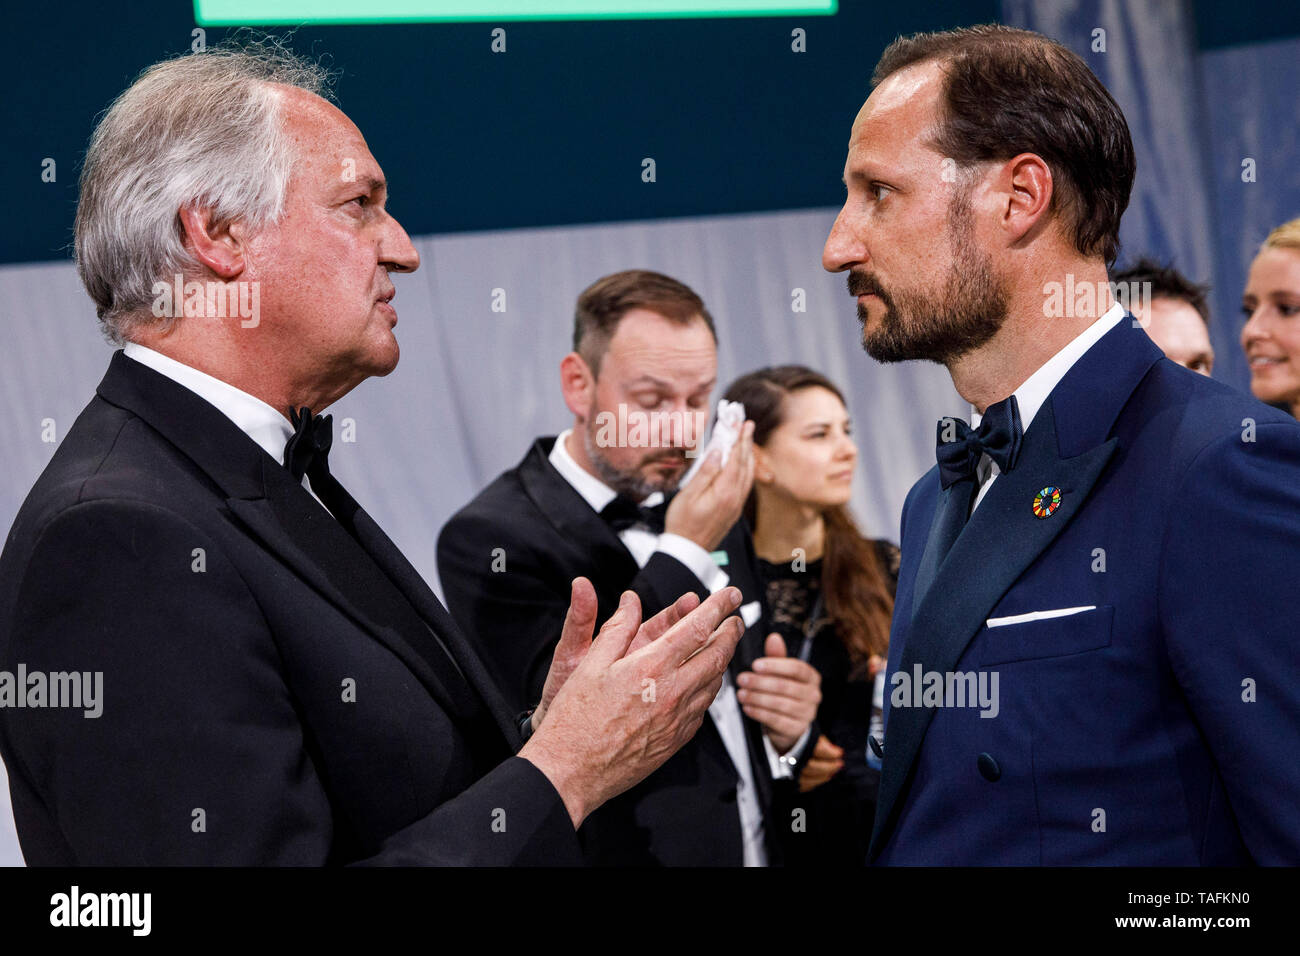 Berlin, Germany. 24th May, 2019. Crown Prince Haakon of Norway (r) talks to Unilever CEO Paul Polman (l) at the Green Awards Gala. The trophies will be awarded during the Greentech Festival. Credit: Carsten Koall/dpa/Alamy Live News - Stock Image